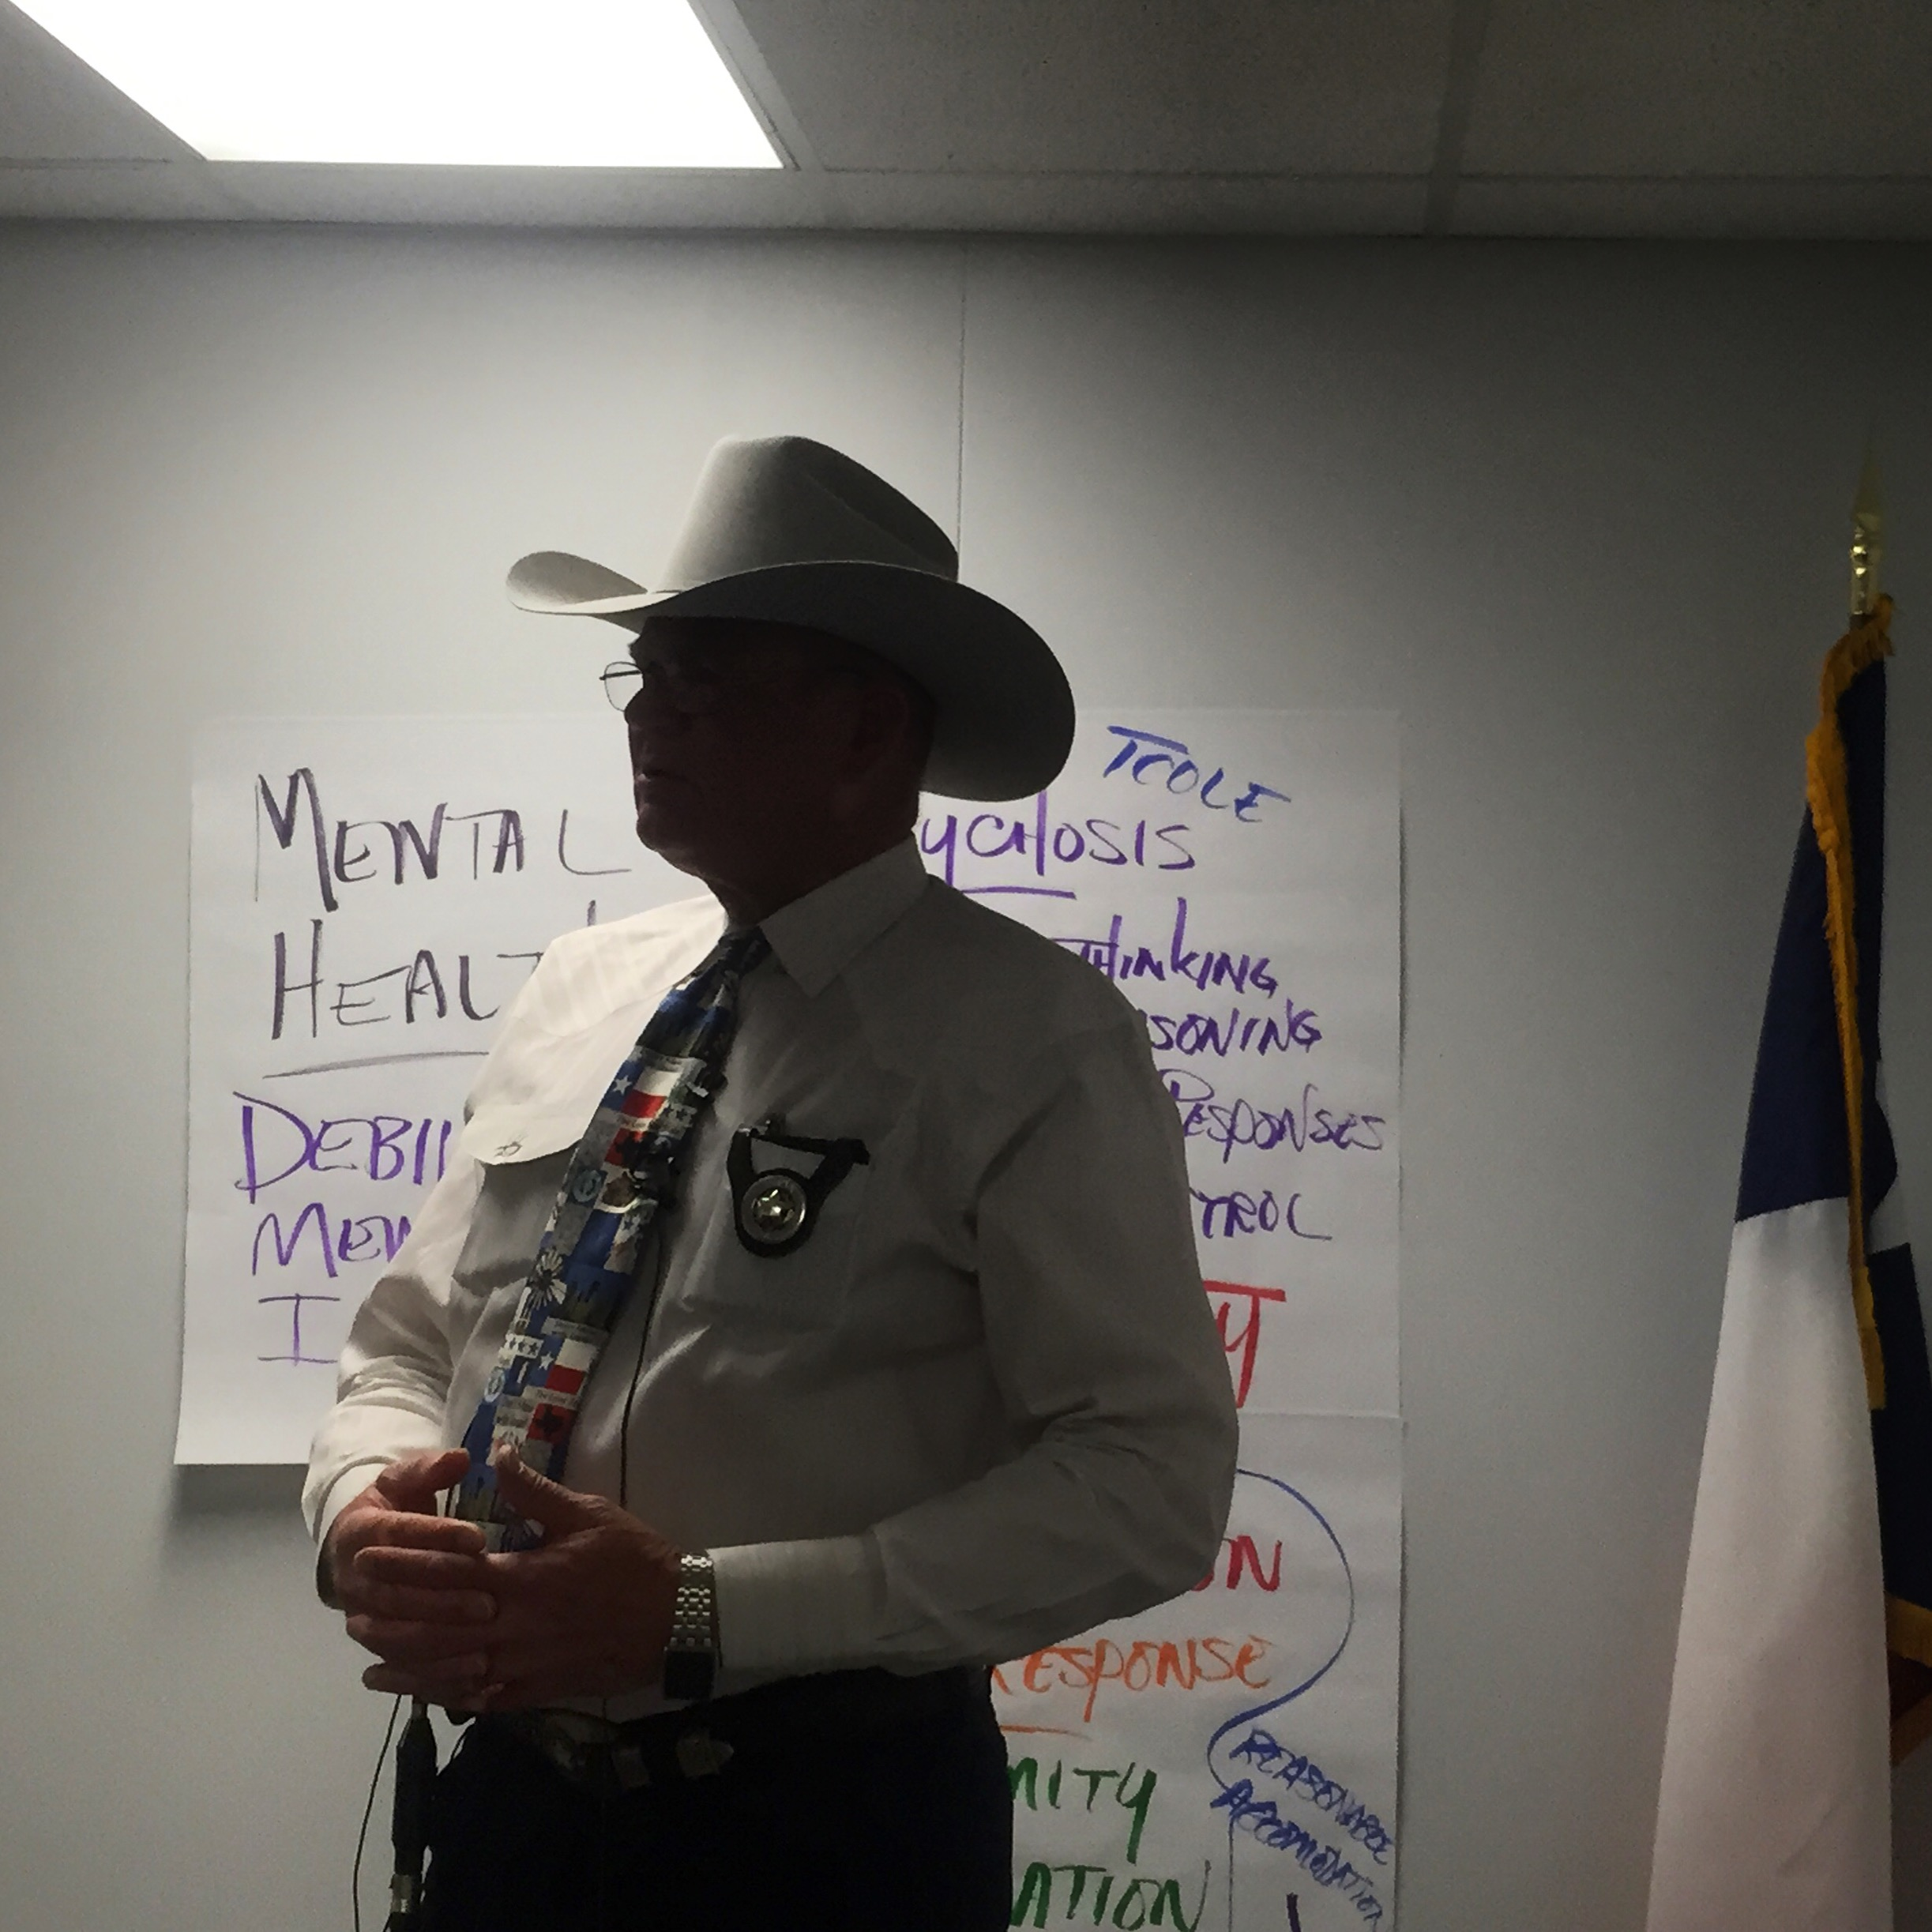 """January, 2016. Midland, TX.  Midland County Sheriff Gary Painter talks to the press about the new mental health task force, in which two police officers will join the 4 specially trained mental health deputies of MCSO's Crisis Response Team. """"My job and my desire is to keep people out of jail,"""" Painter said. """"People that have a mental health crisis do not belong in jail. They require treatment and that's what we're trying to do."""" Calls involving mental health crises have been on the rise every year in Midland. Another trend has been younger and younger children with suicide outcries. Over only the past four months the CRT has responded to 377 calls. Last fiscal year, the CRT responded to a totally of 265 over a period of six months.  #mentalhealth  #decriminalizementalillness    #MidlandTX  #recovery    #SnapshotLives  #suicideprevention   http://m.mrt.com/news/top_stories/article_c05c3b6e-b8da-11e5-bea1-8feb710c0fdb.html?mode=jqm"""